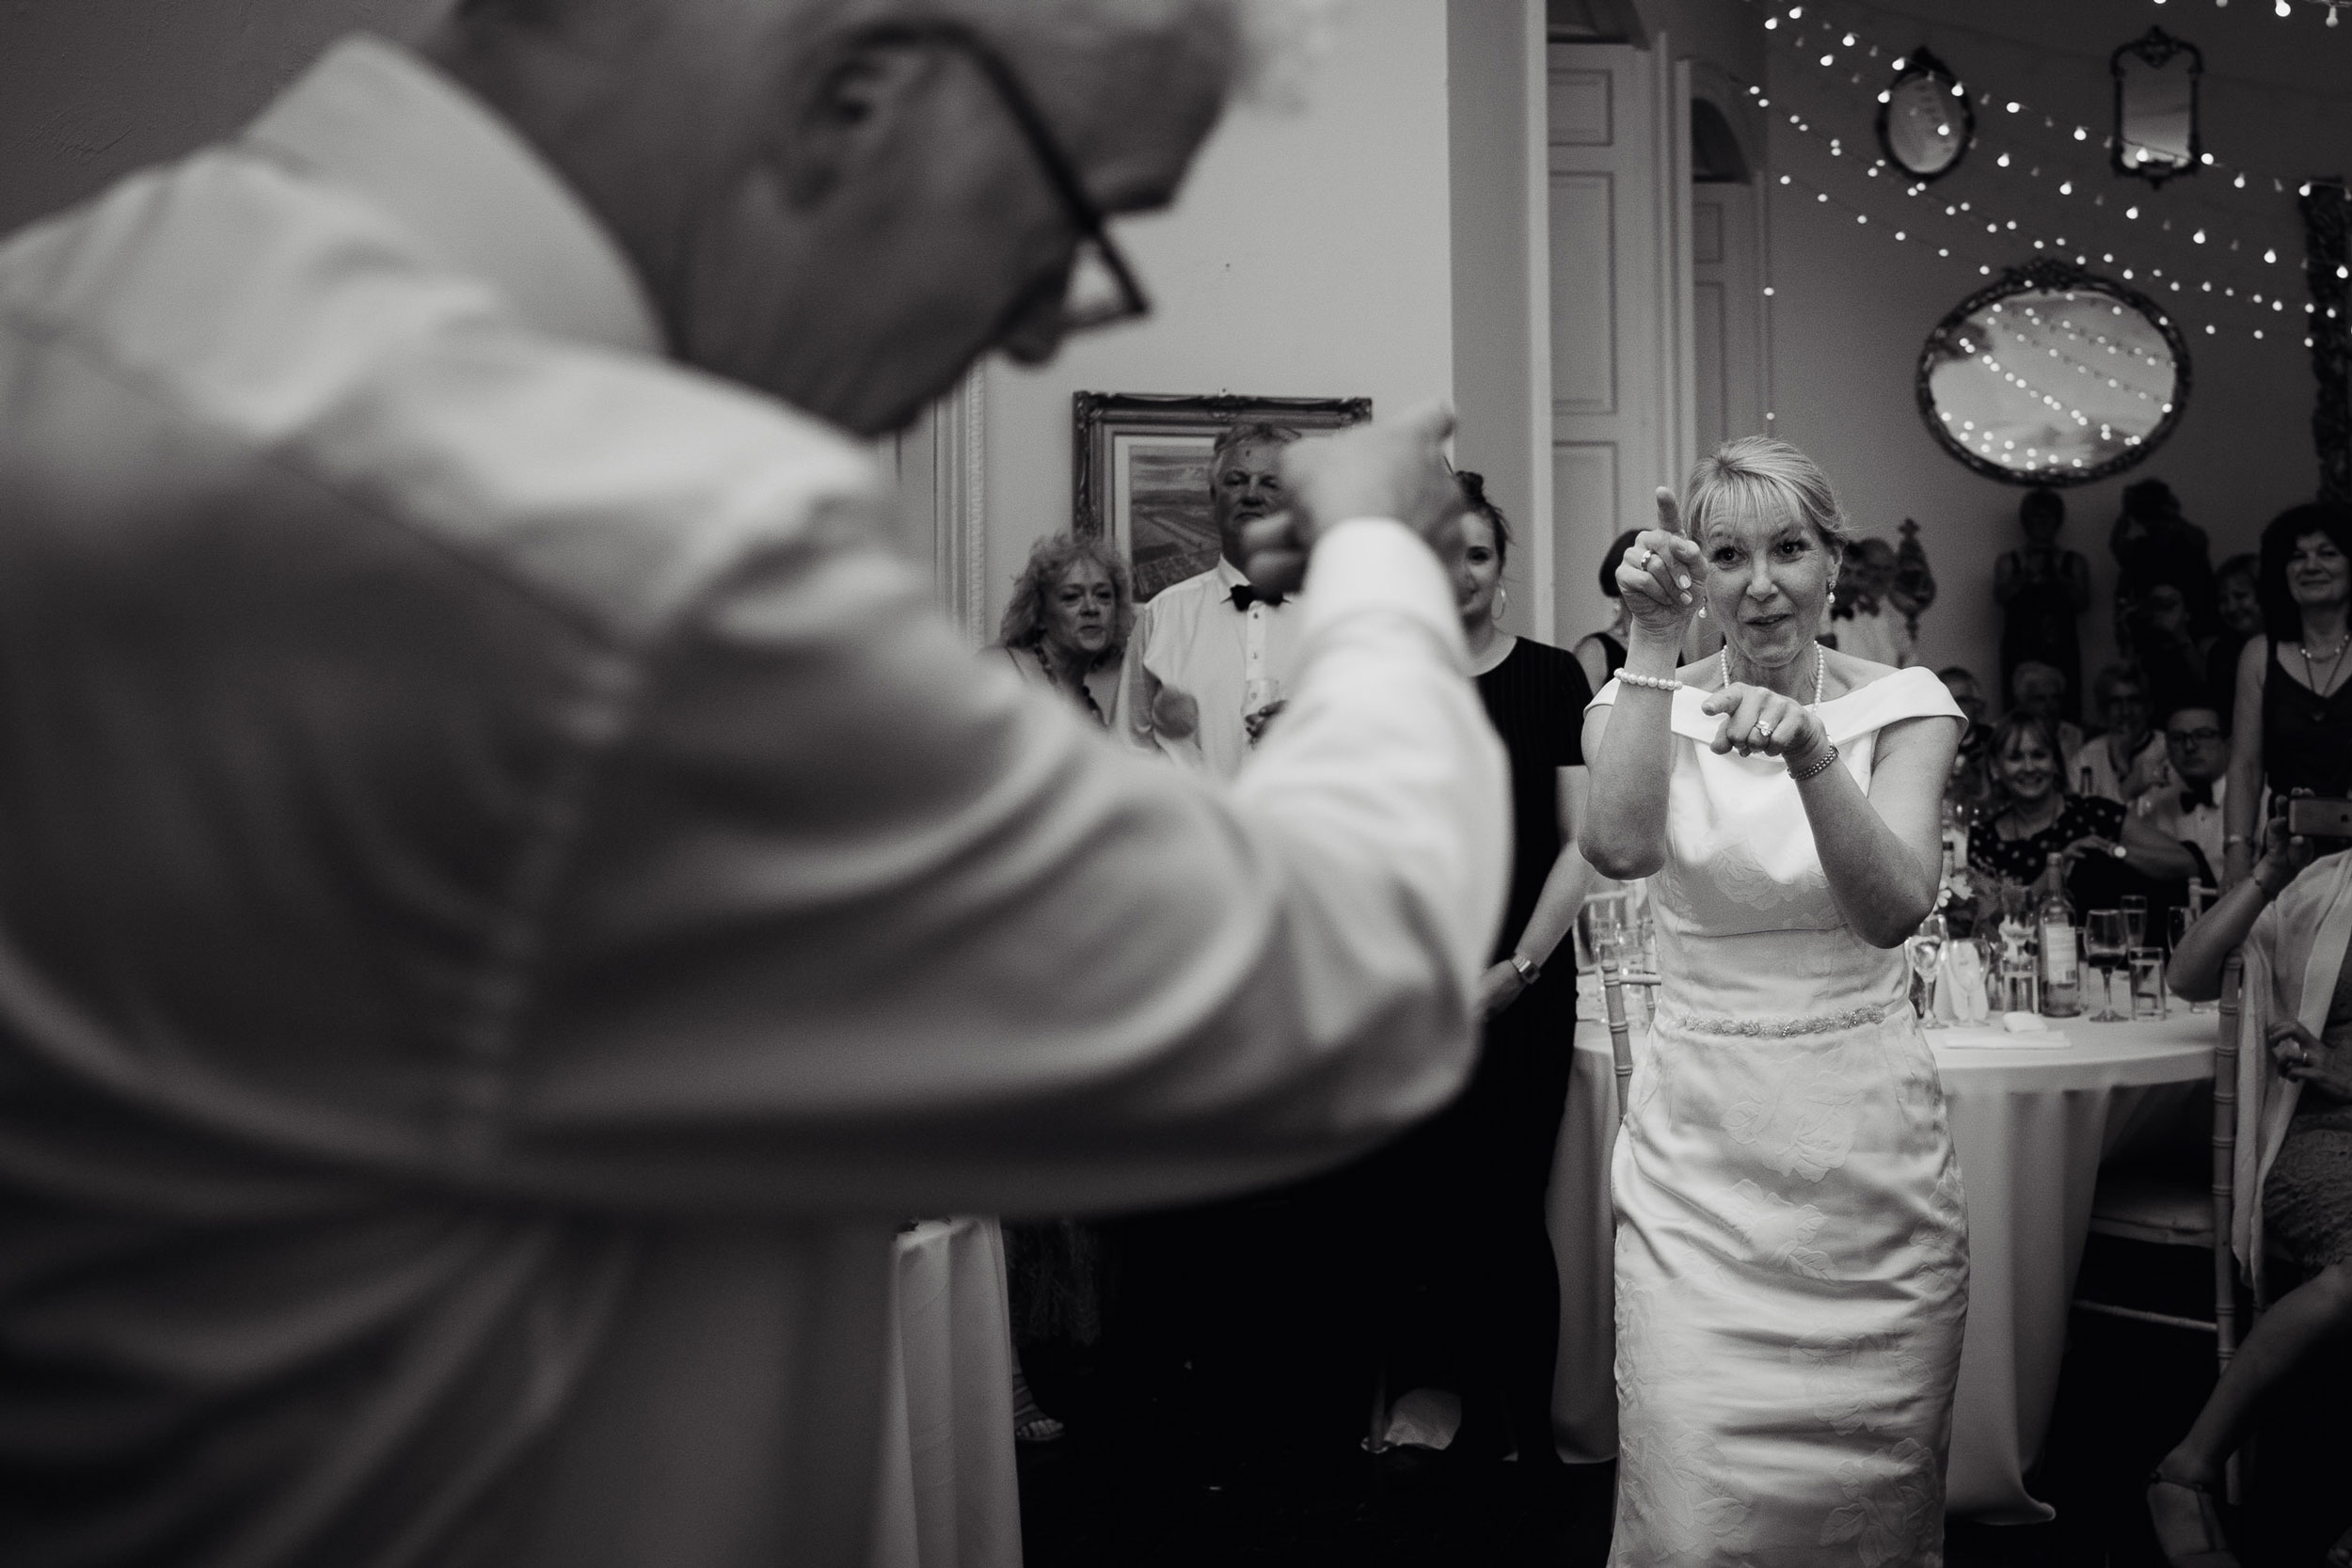 duncan-mein-photography-wedding-photographer-bristol-portfolio-130